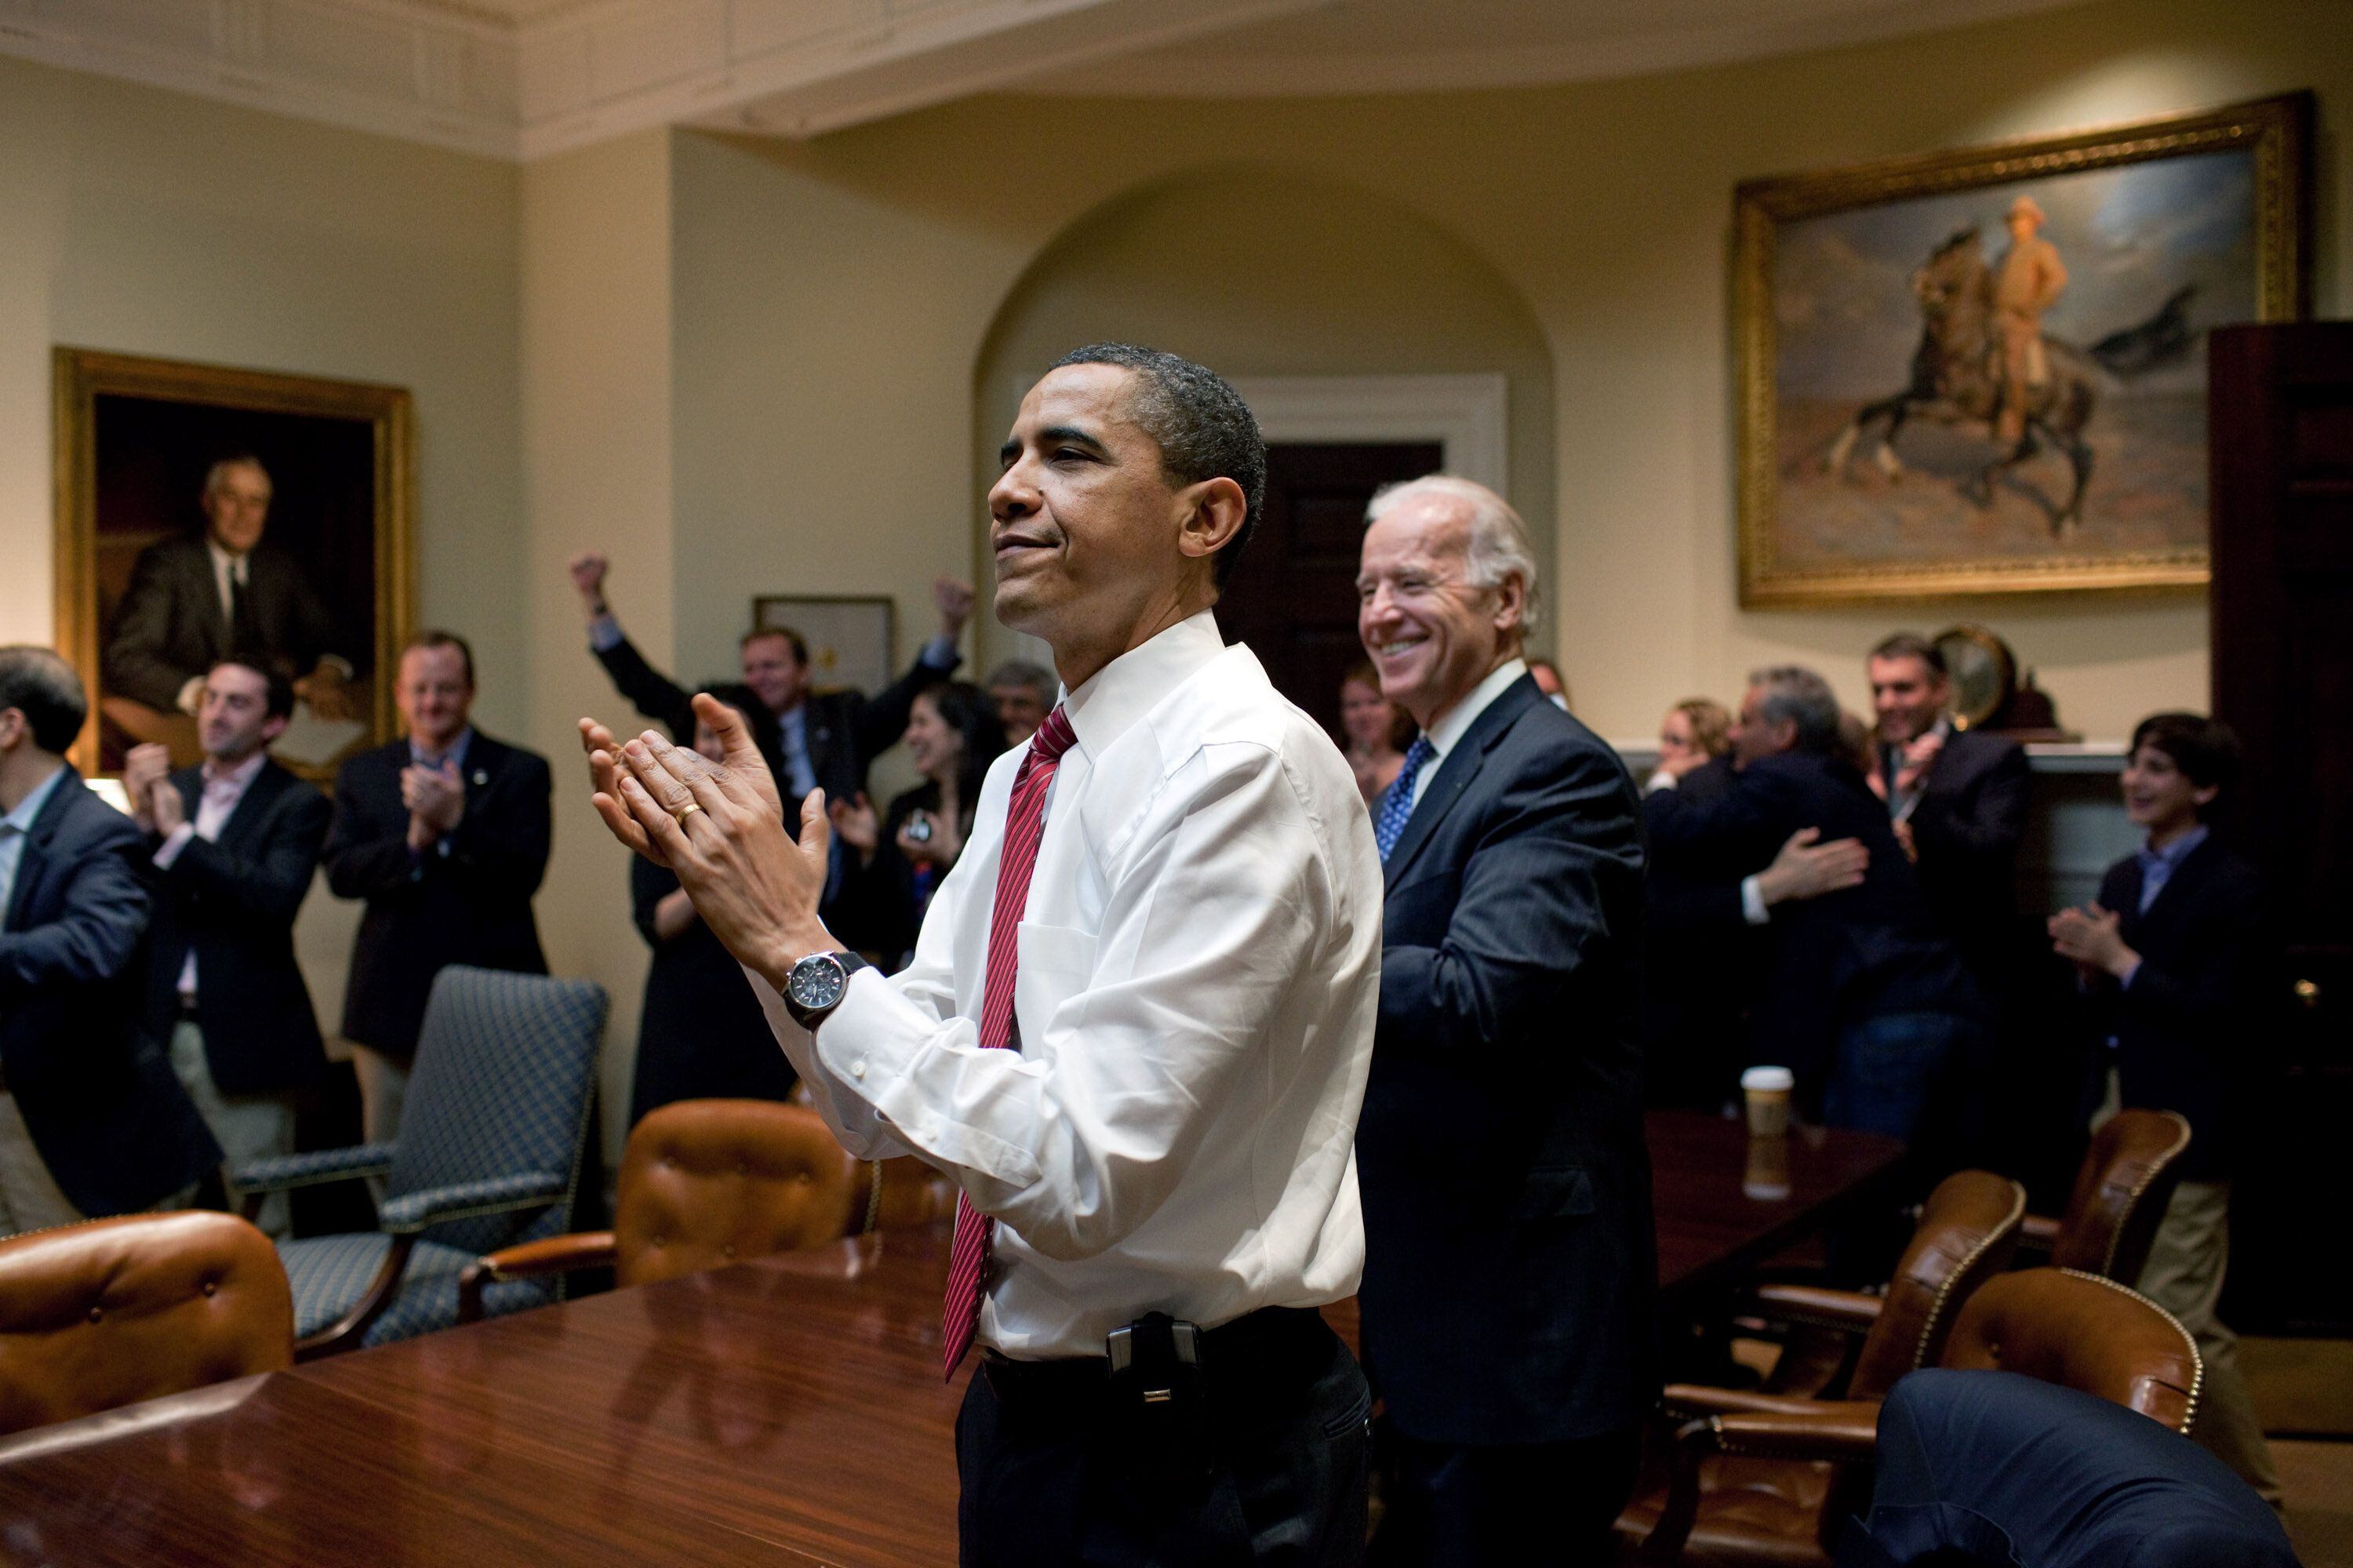 Obama and Biden in the Roosevelt Room, celebrating the Affordable Care Act's passage.